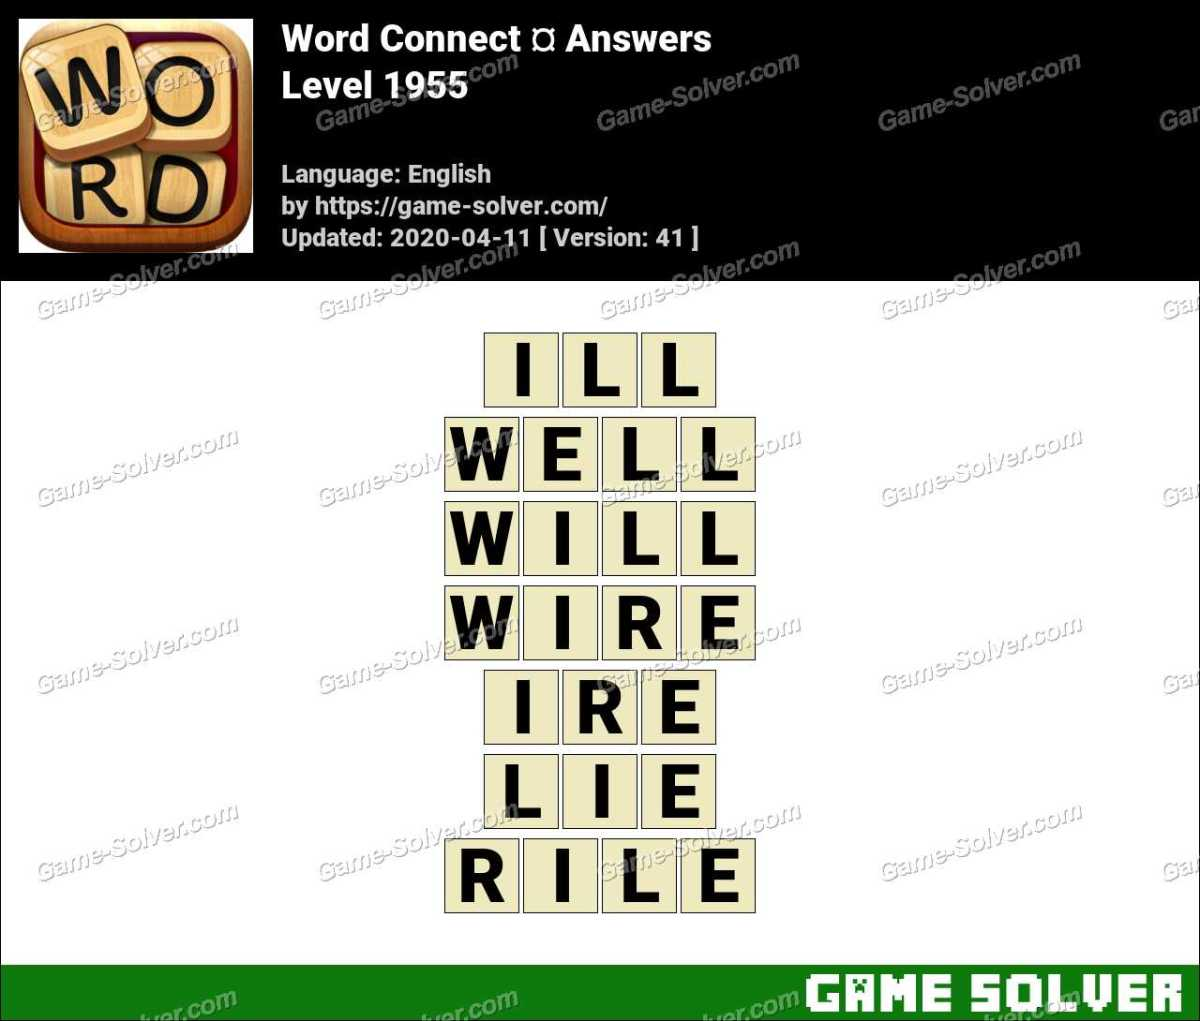 Word Connect Level 1955 Answers